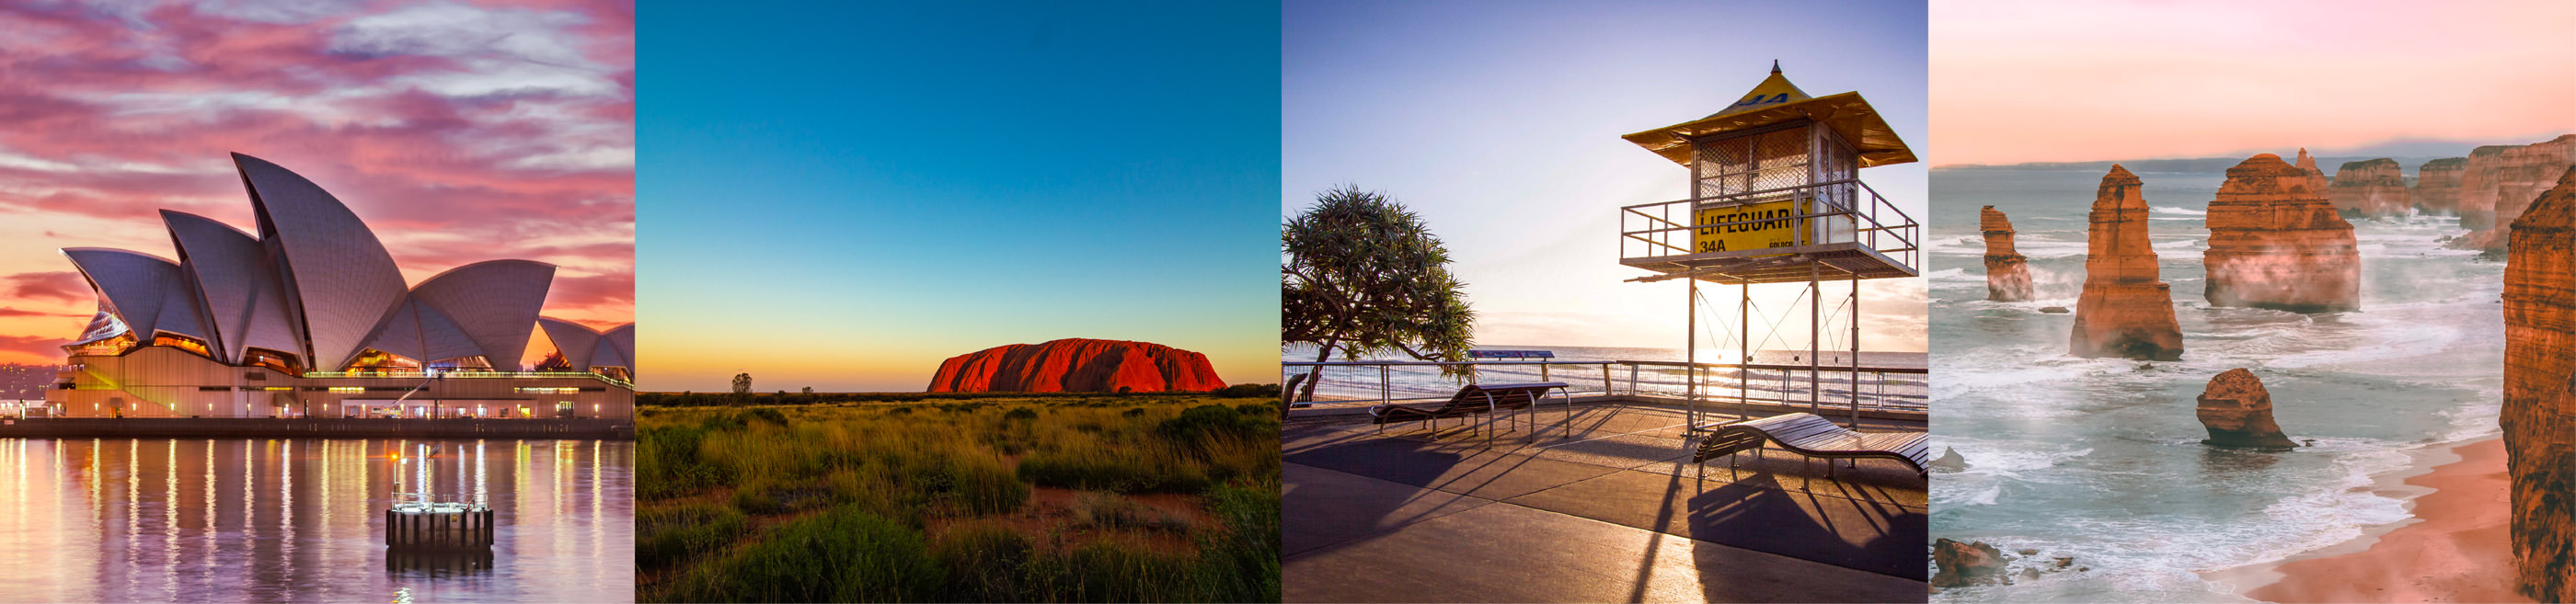 Iconic australian destinations: Sydney Opera House, Uluru, Gold Coast and the 12 Apostles